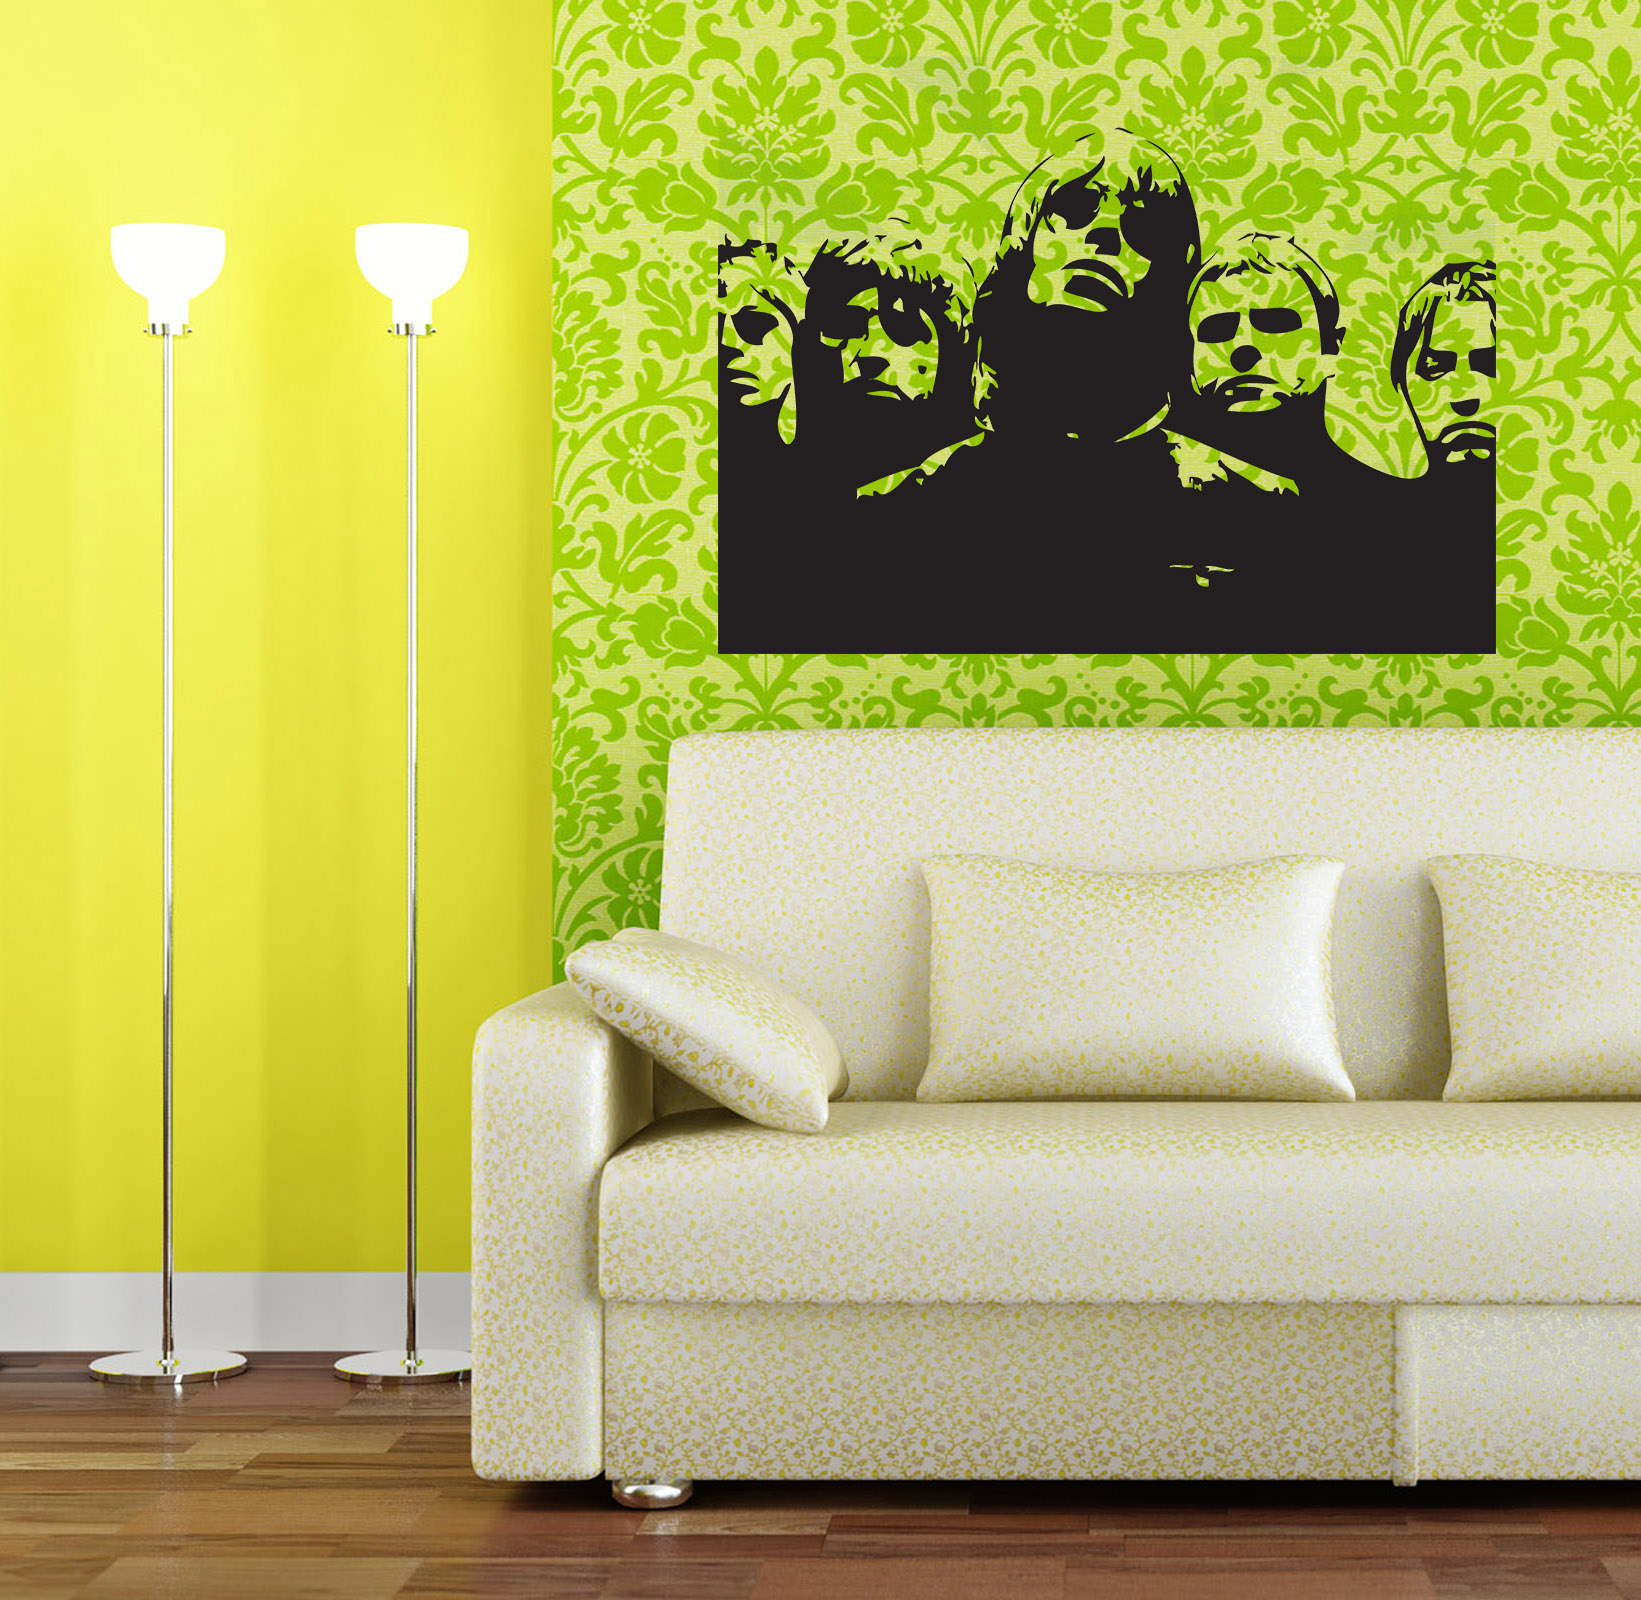 Urban and street art wall stickers and decals